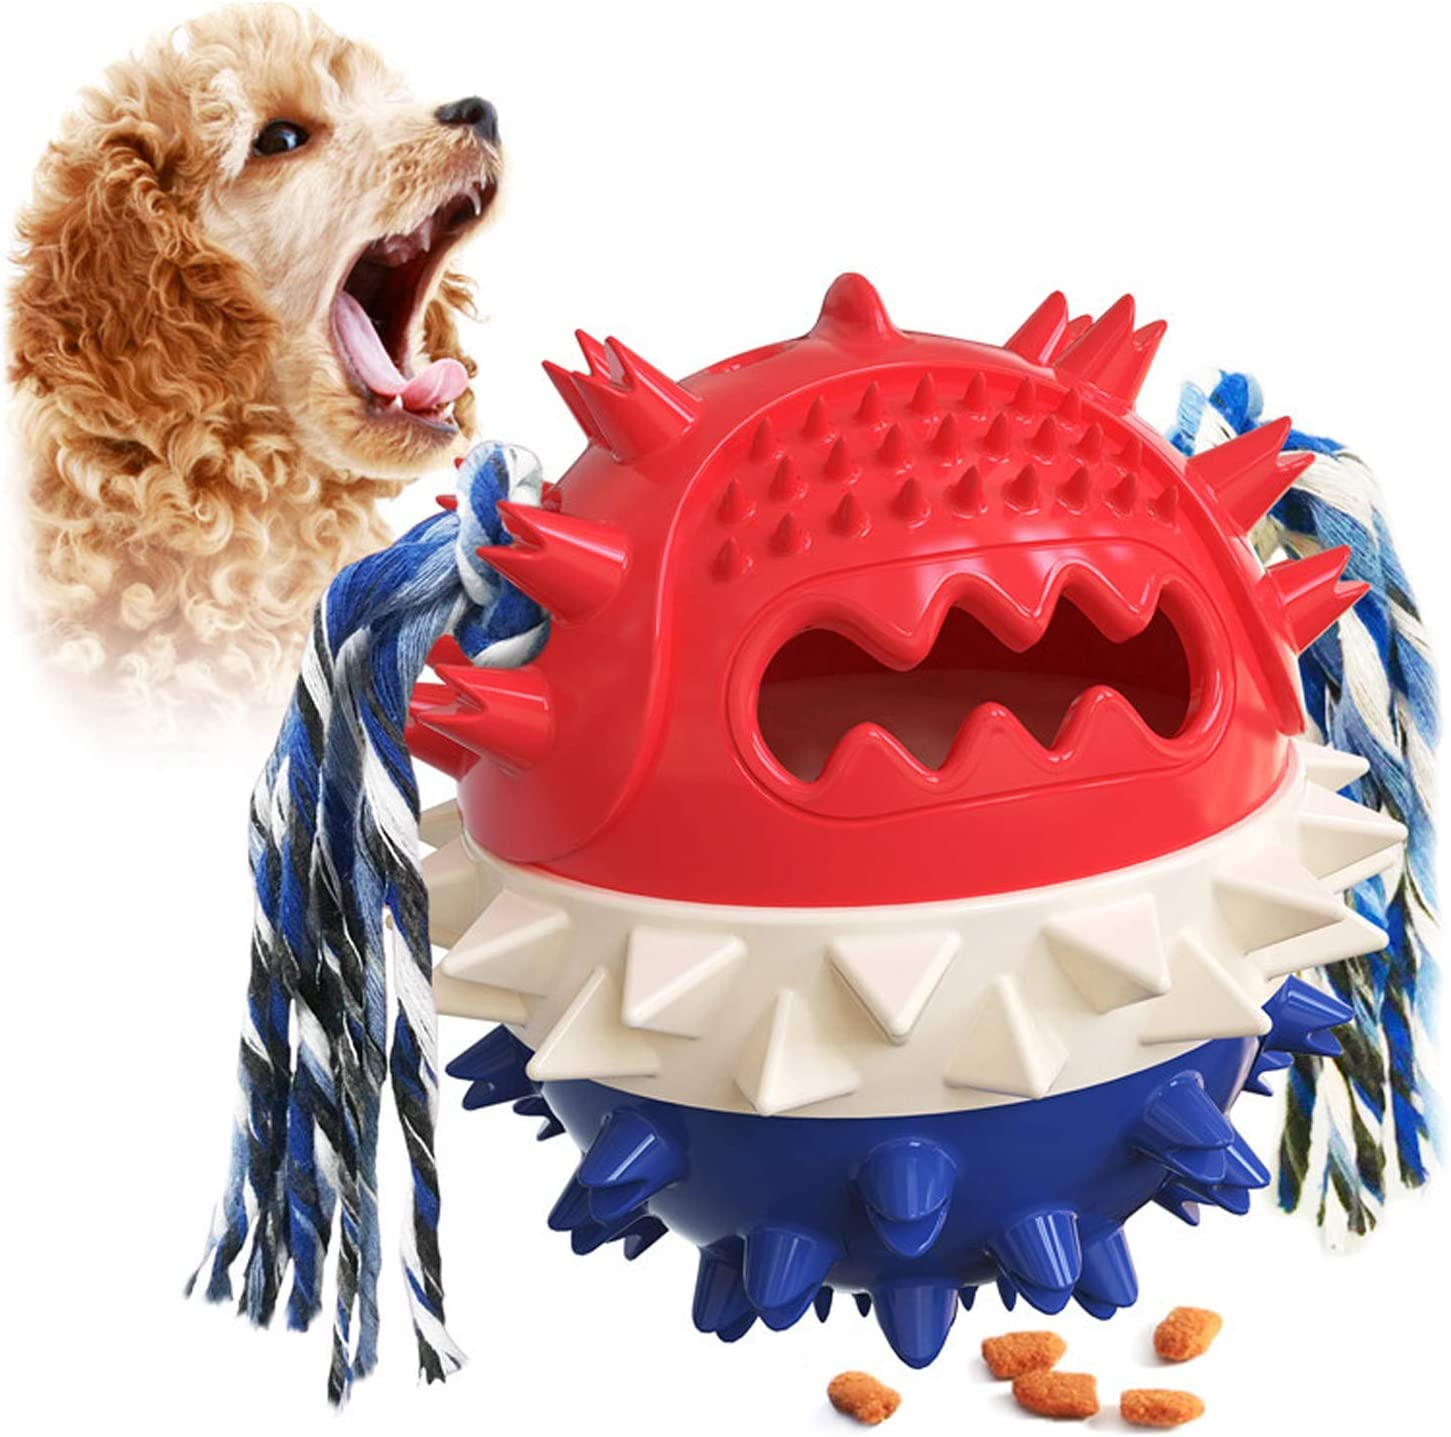 Suction Cup Dog Toy self Play tug of War Dog Toys and Chewing Rubber Ball Dog Rope Toys Chewing Teeth Cleaning Interactive pet and Food Dispensing Ball Toys (red)